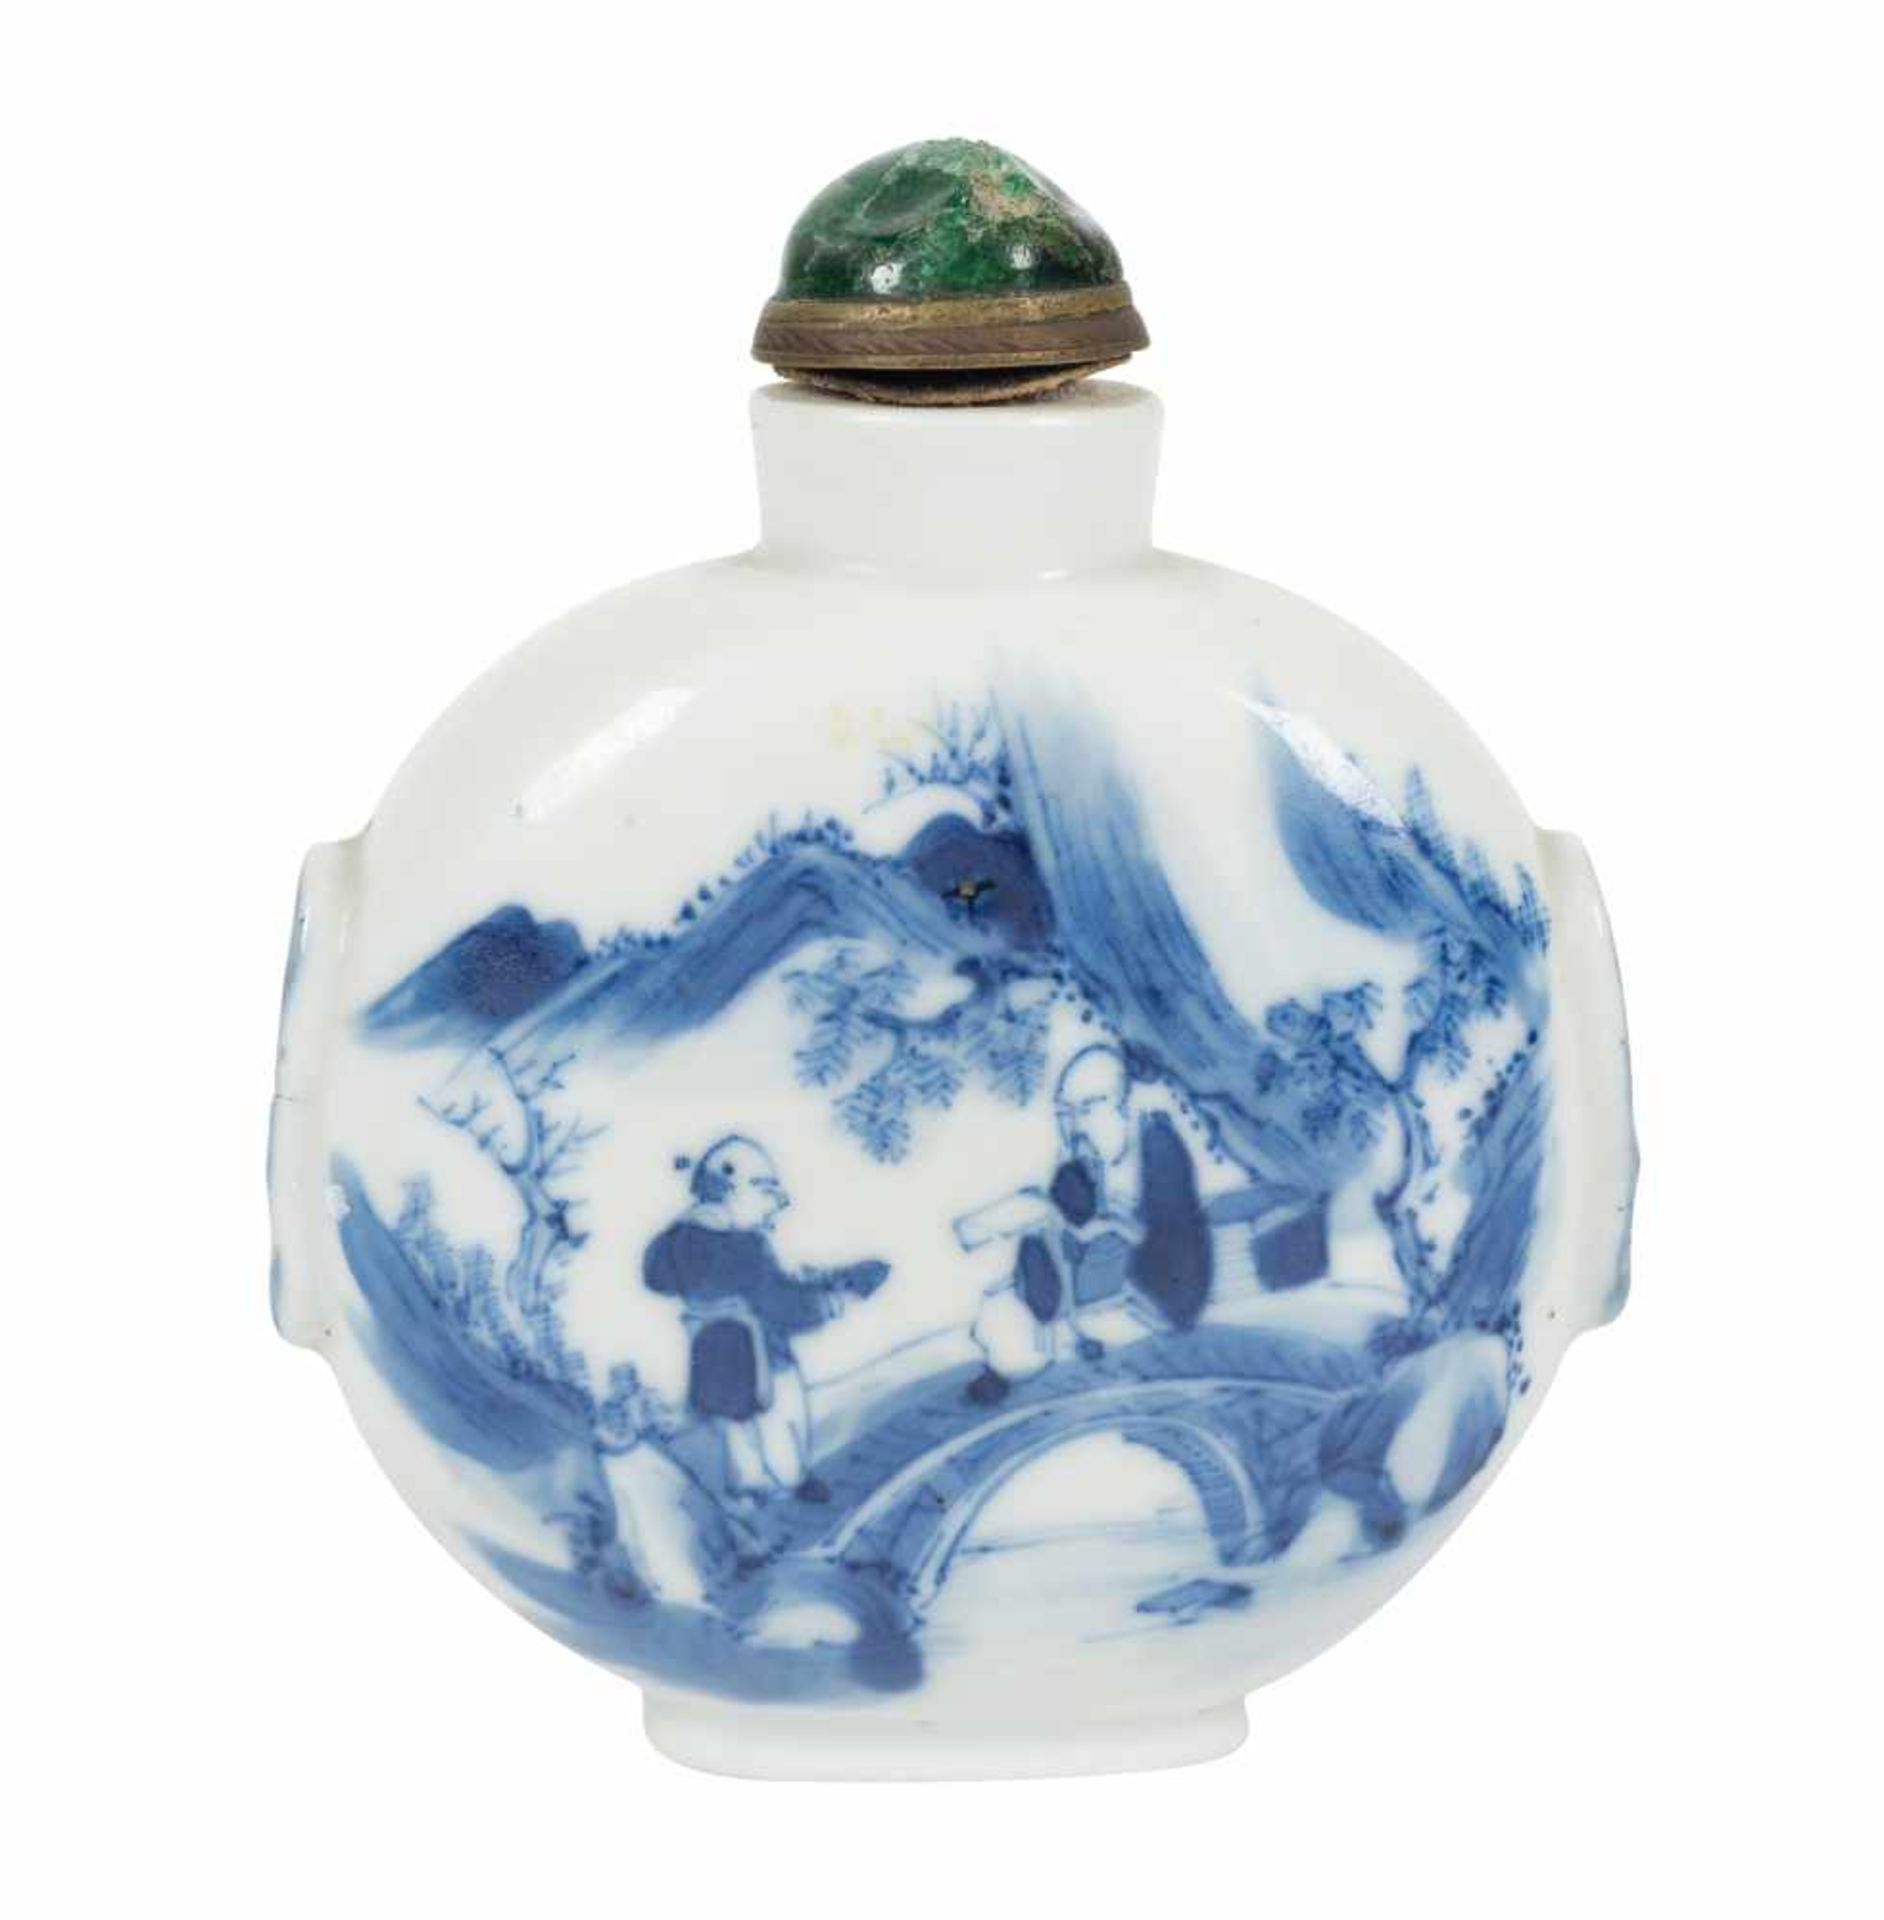 Los 23 - A blue and white porcelain snuff bottle. China. Qing dynasty. 19th Century. Height: 10 cm.<